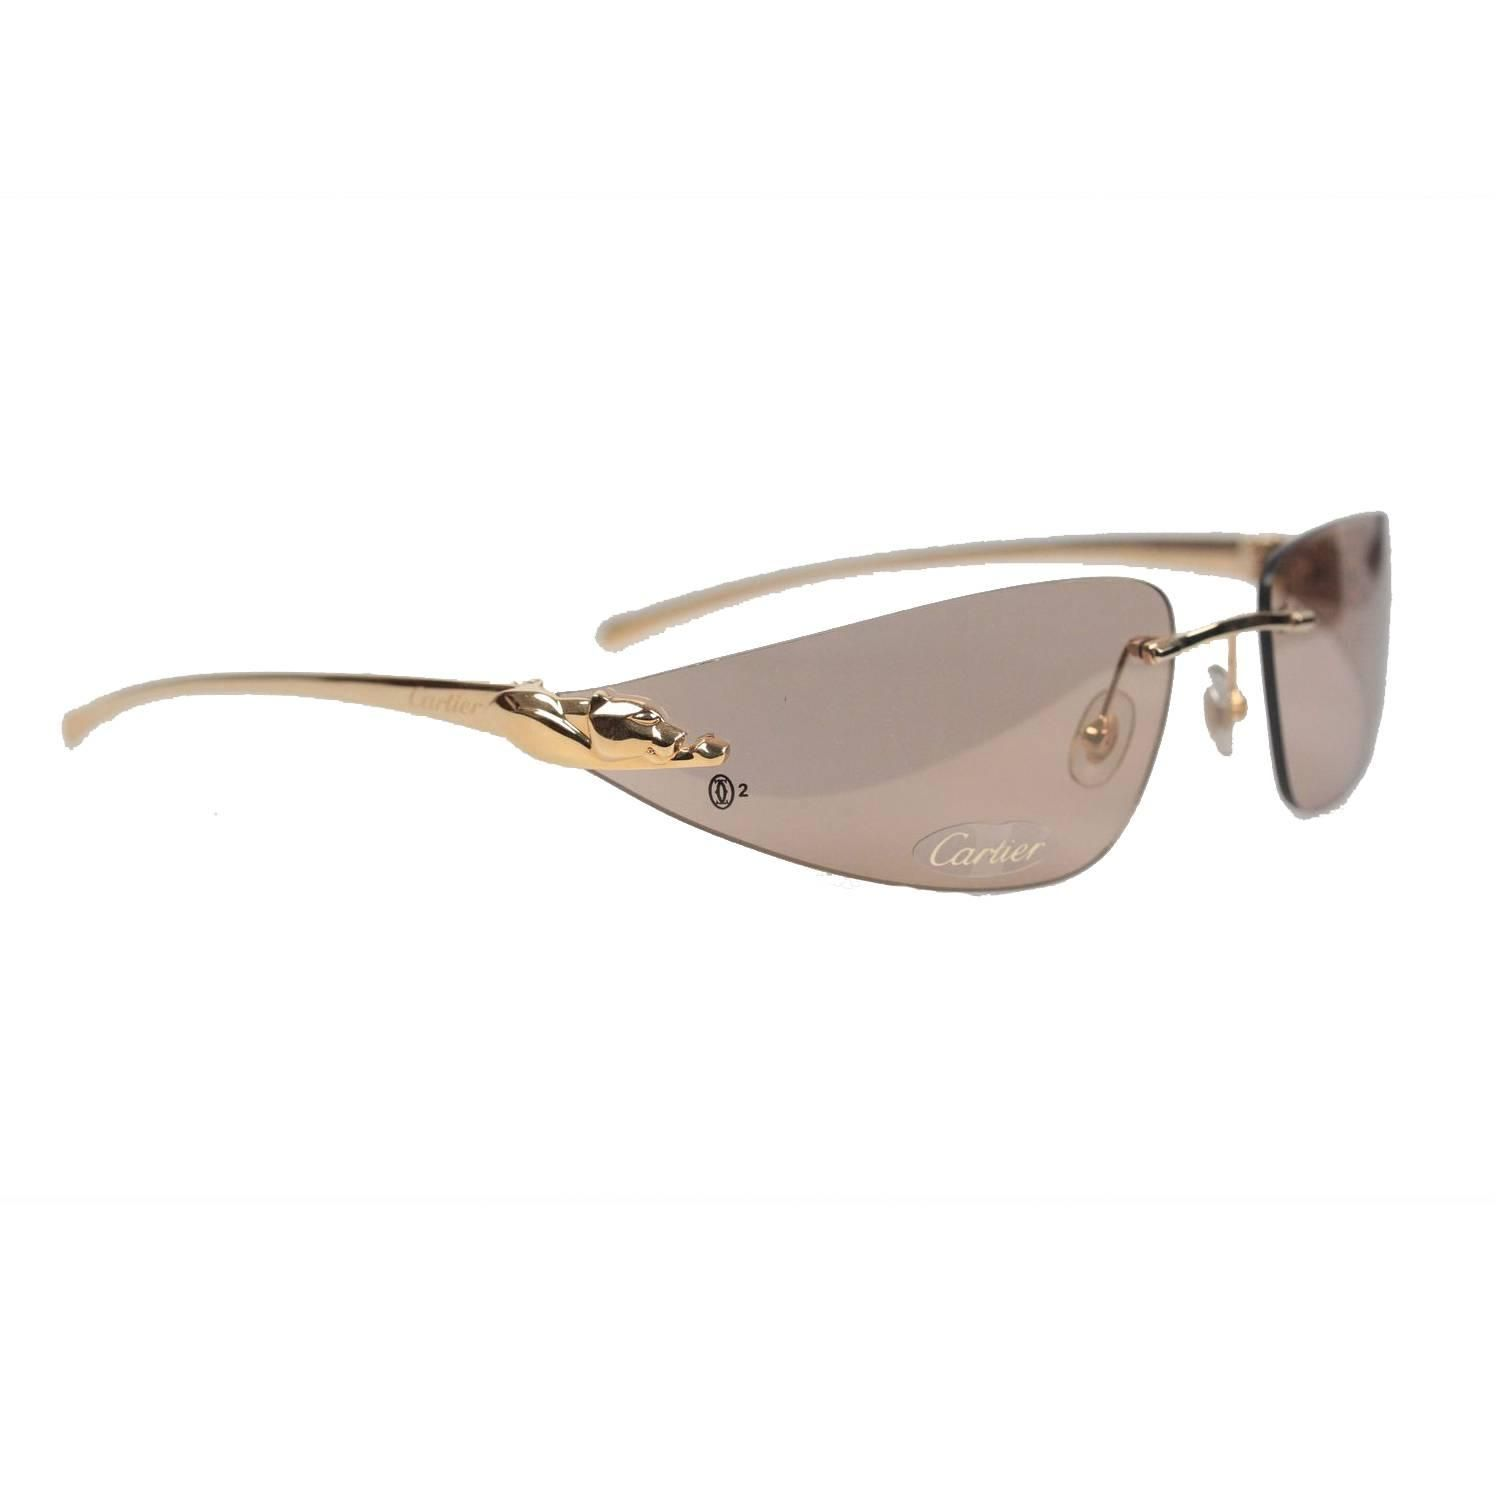 eafc649a12 Cartier Paris Sunglasses Panthere T8200611 Gold Brown 110 For Sale at  1stdibs